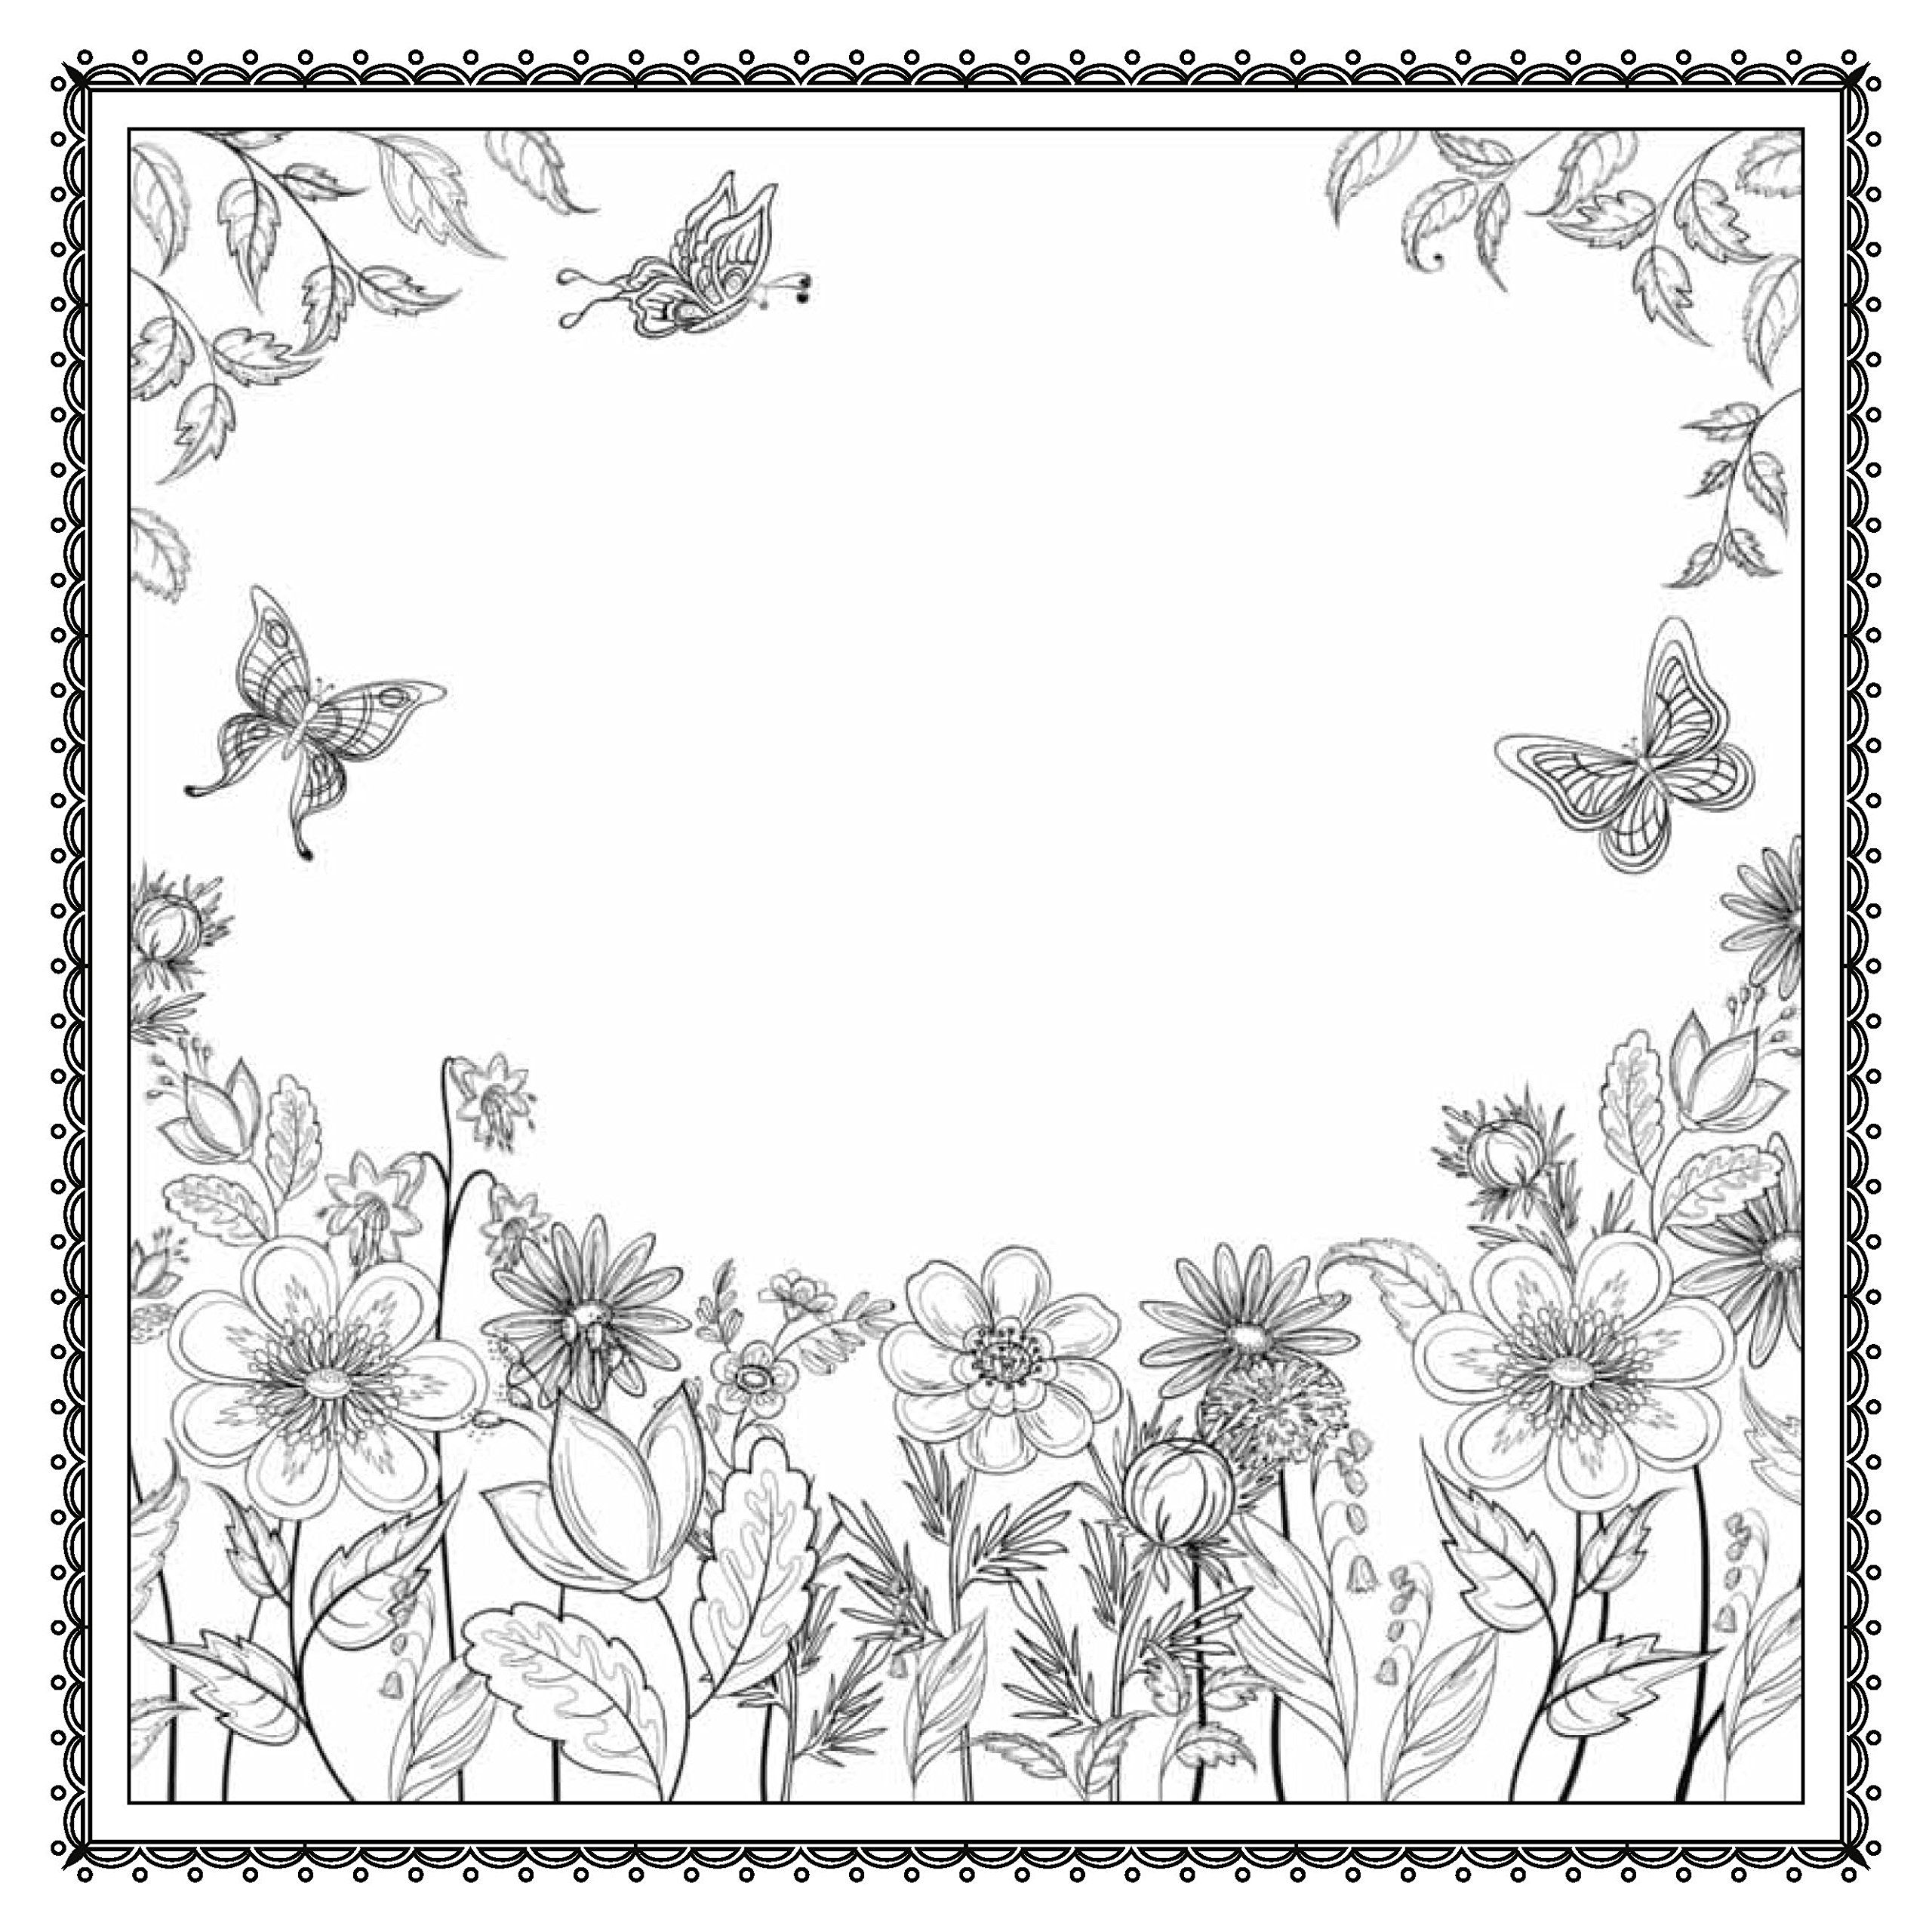 Inspirational Coloring Pages From Secret Garden Enchanted Forest And Other Coloring Books For Grown Coloring Pages Nature Garden Coloring Pages Coloring Books